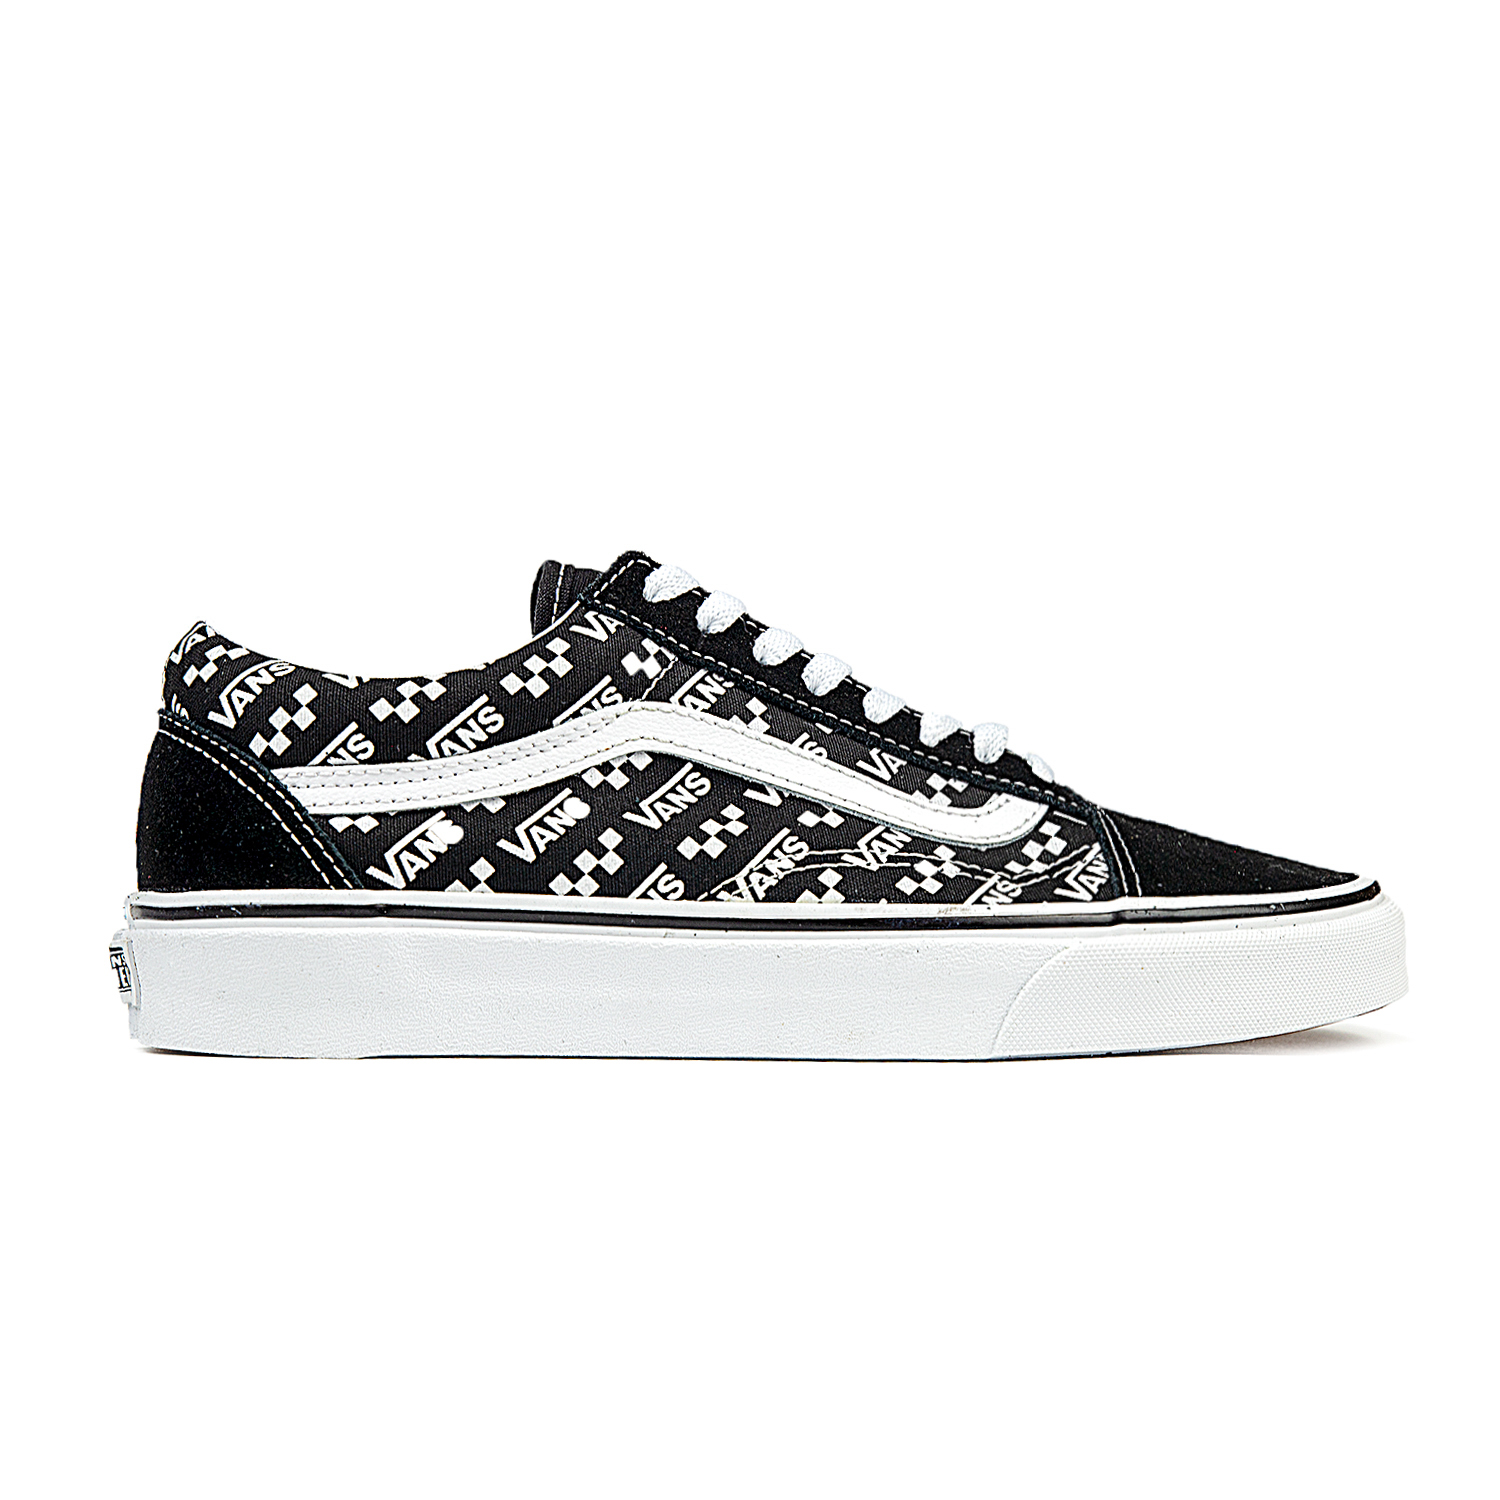 Vans Old Skool (Logo Repeat) BlackTrue White Shoes